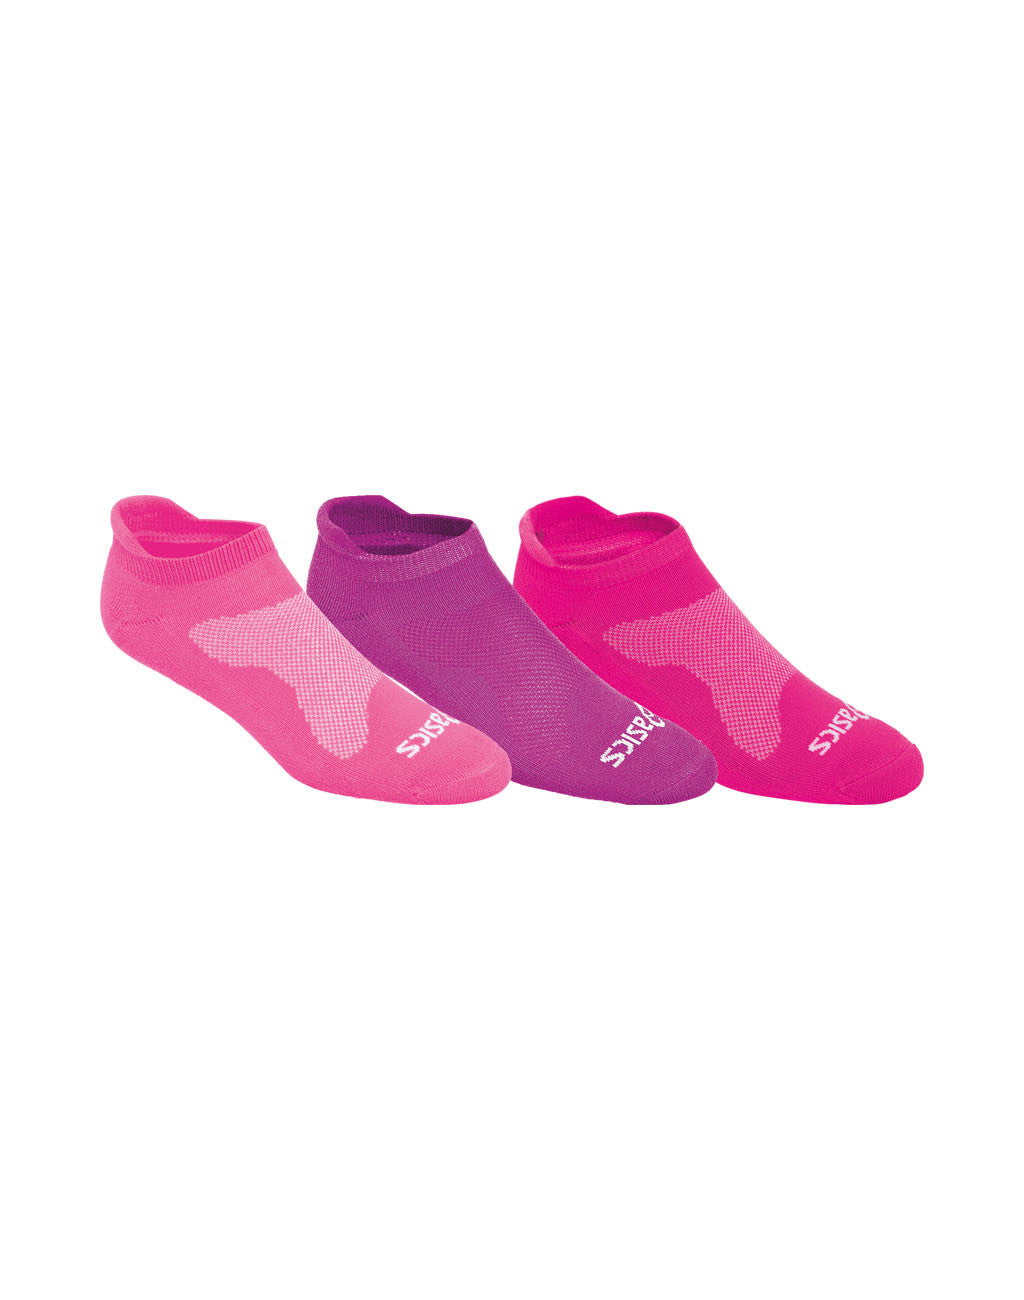 ASICS Cushion Low Cut (3 Pack) (Women's)S_master_image